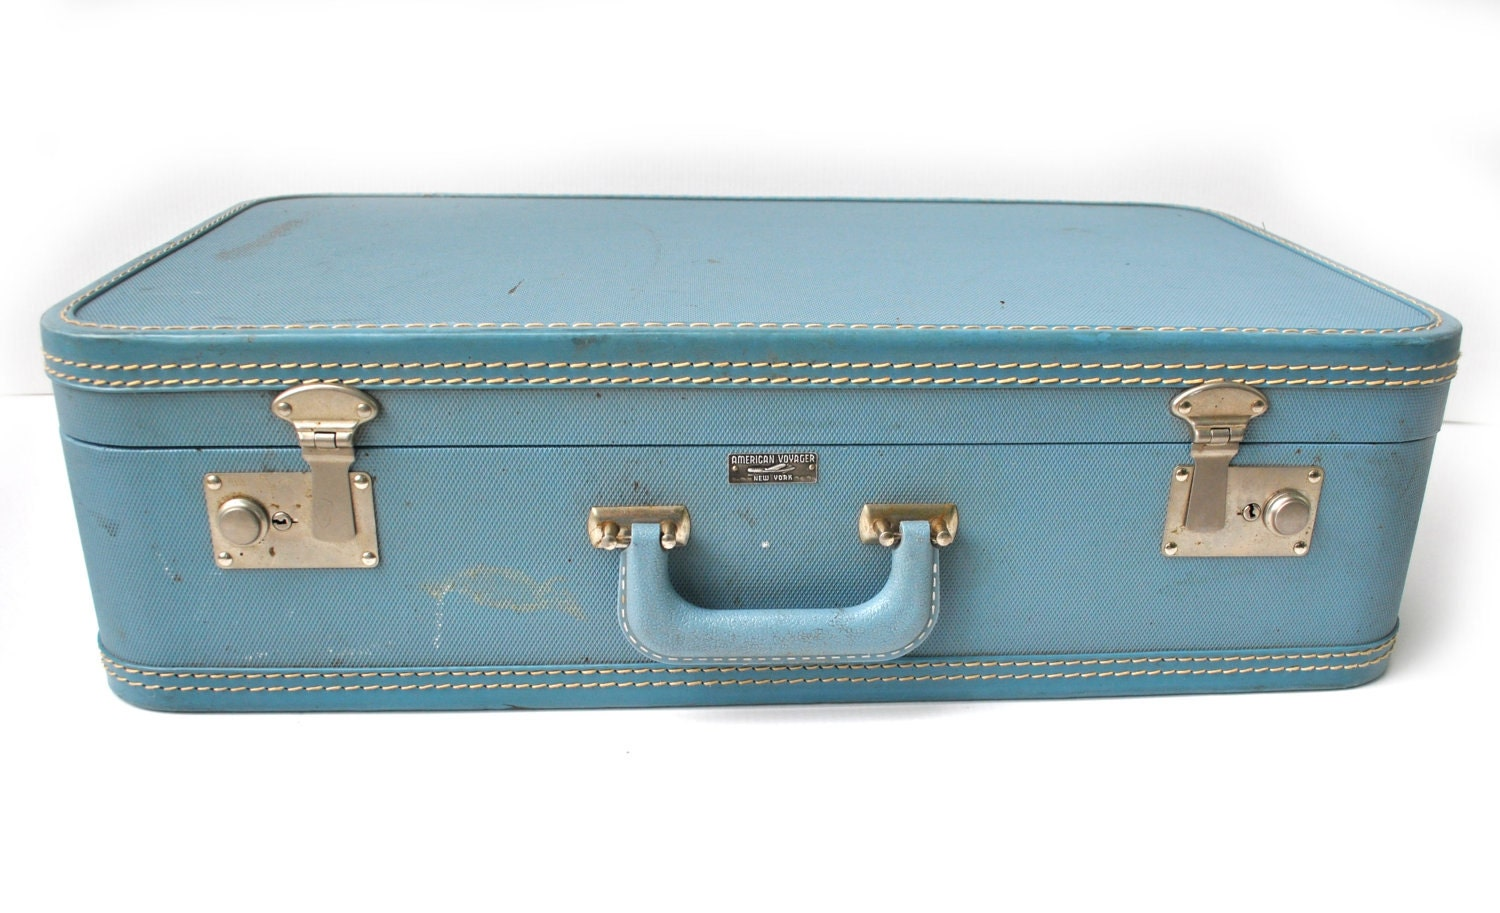 Vintage suitcase luggage blue old antique american voyager new - Vintage suitcase ...